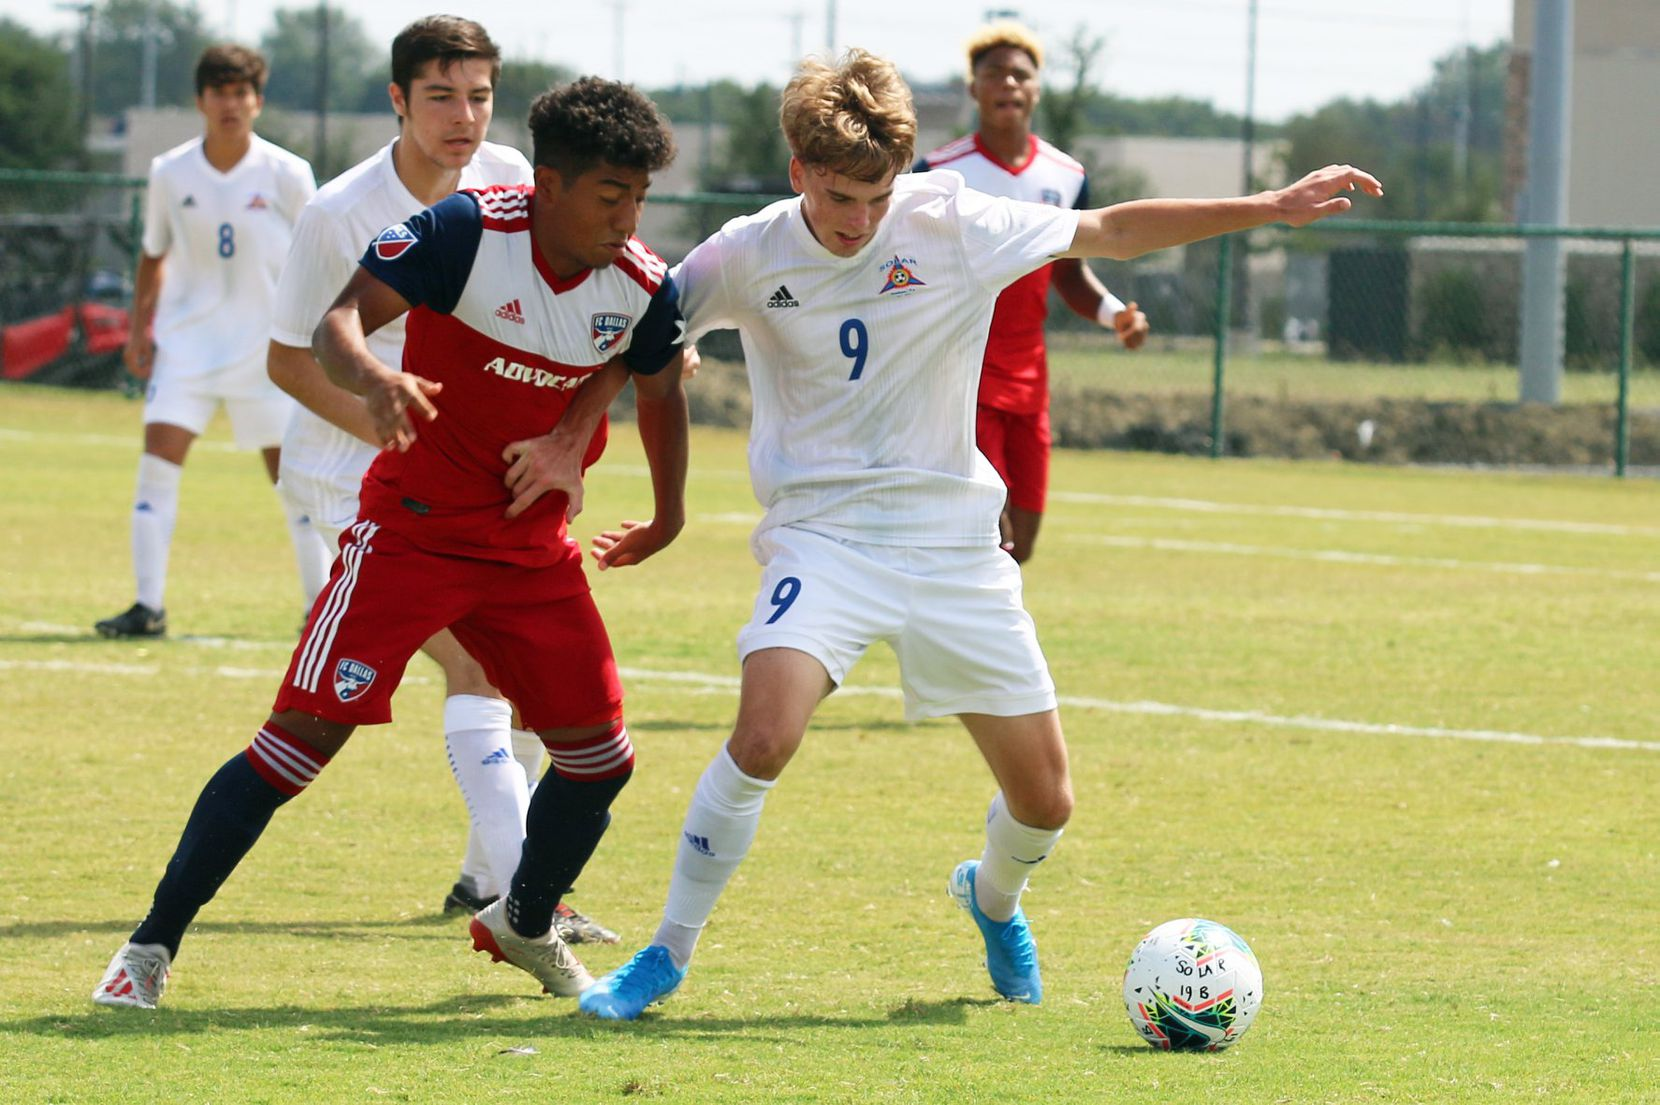 FC Dallas right back Kevin Bonilla defends against #9 Nathan Hayes of Solar SC. (9-22-19)